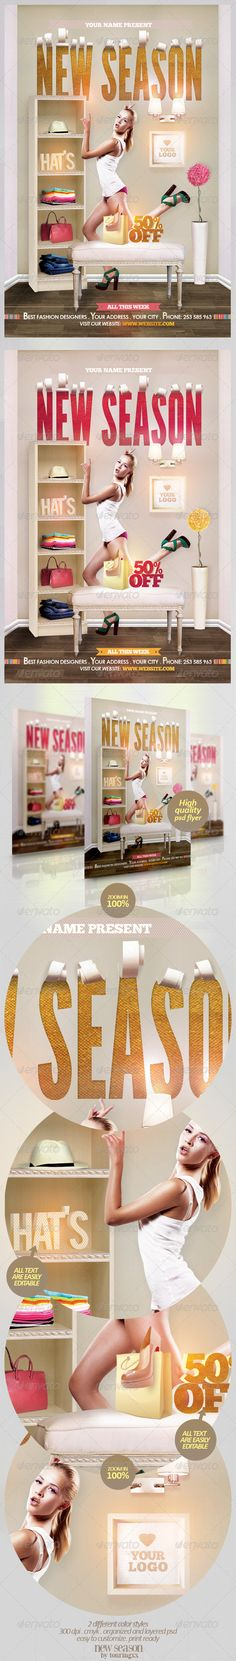 New Season Flyer Template/ $6. *** This flyer is perfect for the promotion of Shops/Boutiques, Sales/Promotions, Fashion Shows, New Collections or Whatever you Want!.***